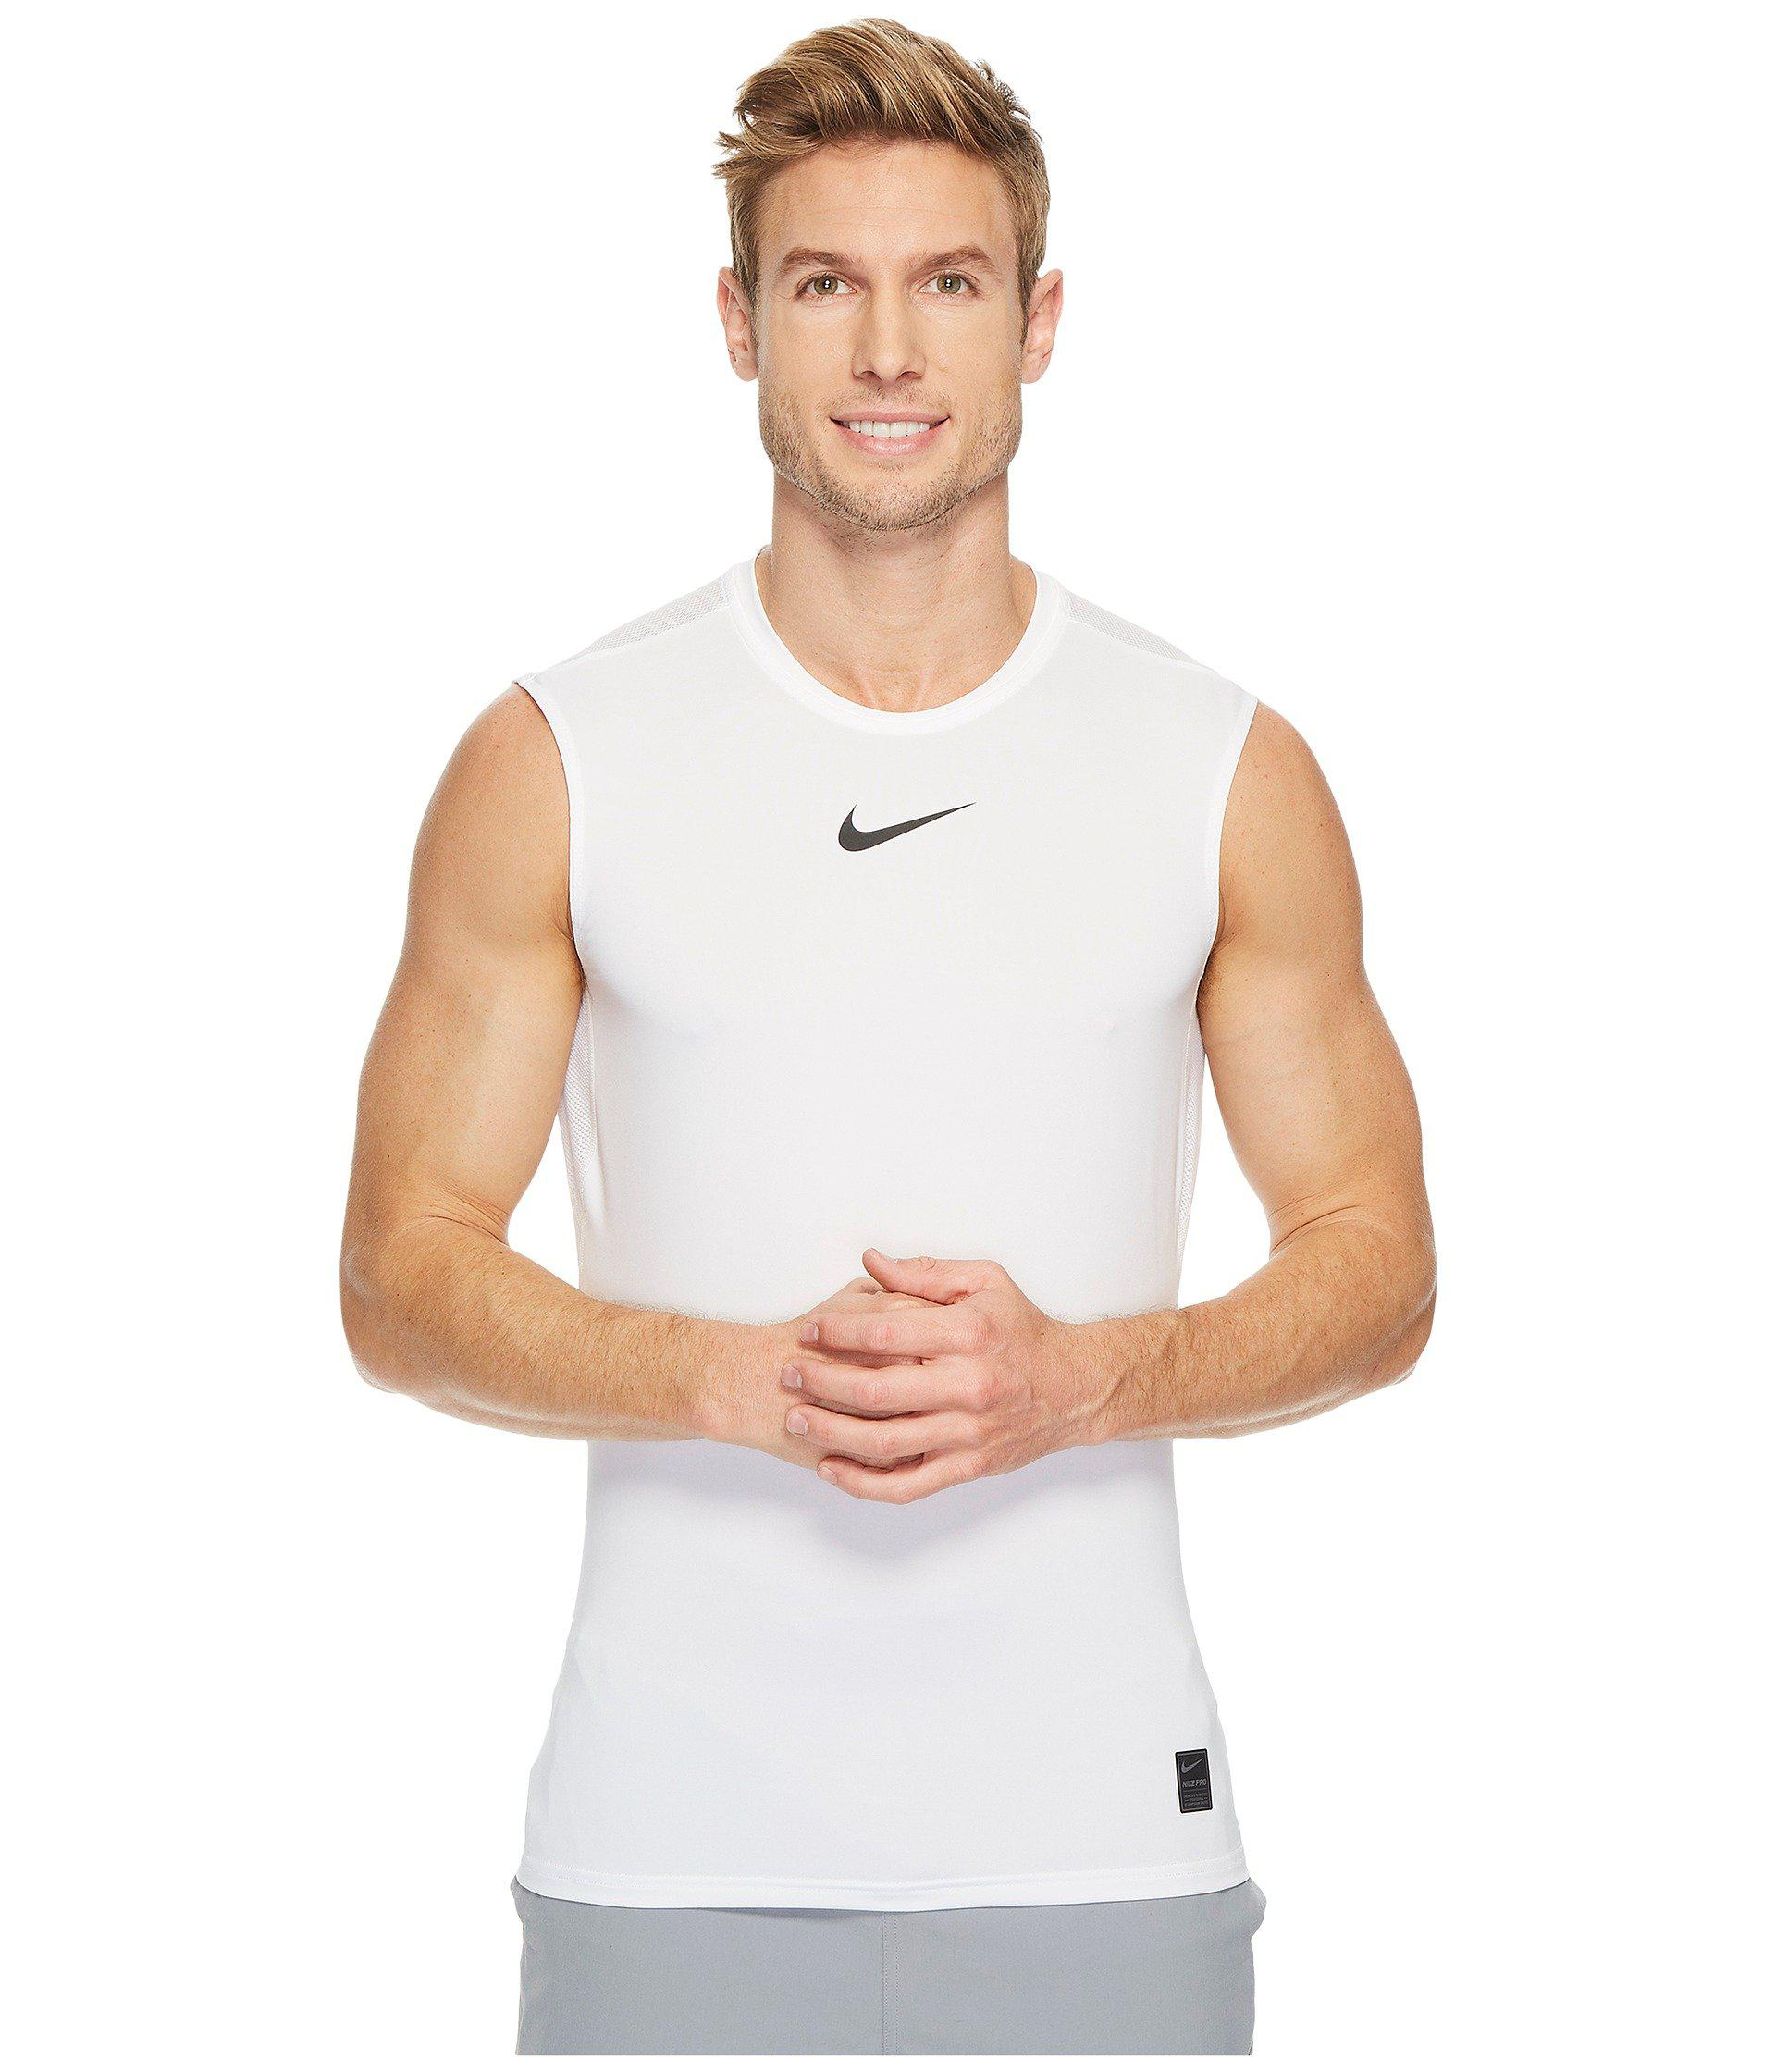 8b57c61b53a Nike Pro Sleeveless Training Top in White for Men - Save 46% - Lyst